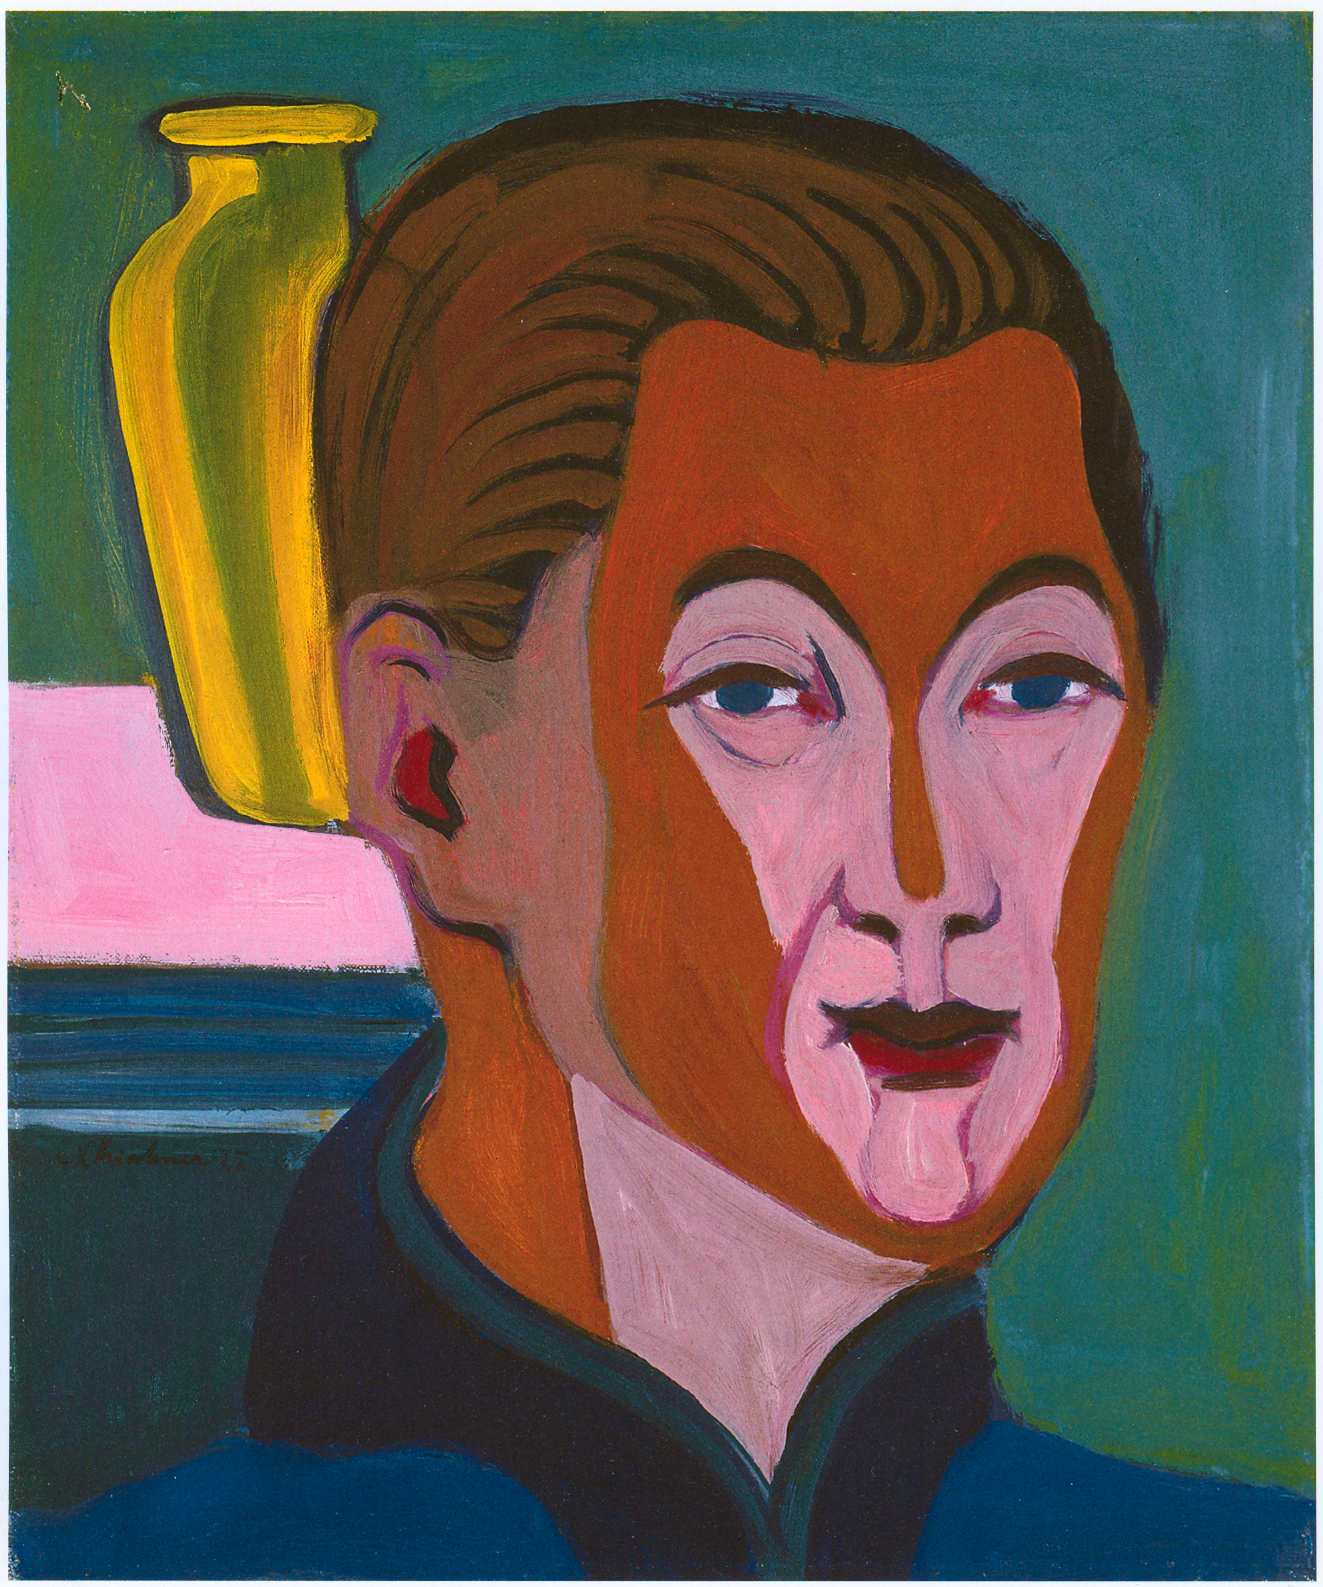 Head of the Painter (Self-portrait) - Ernst Ludwig Kirchner - head-of-the-painter-self-portrait